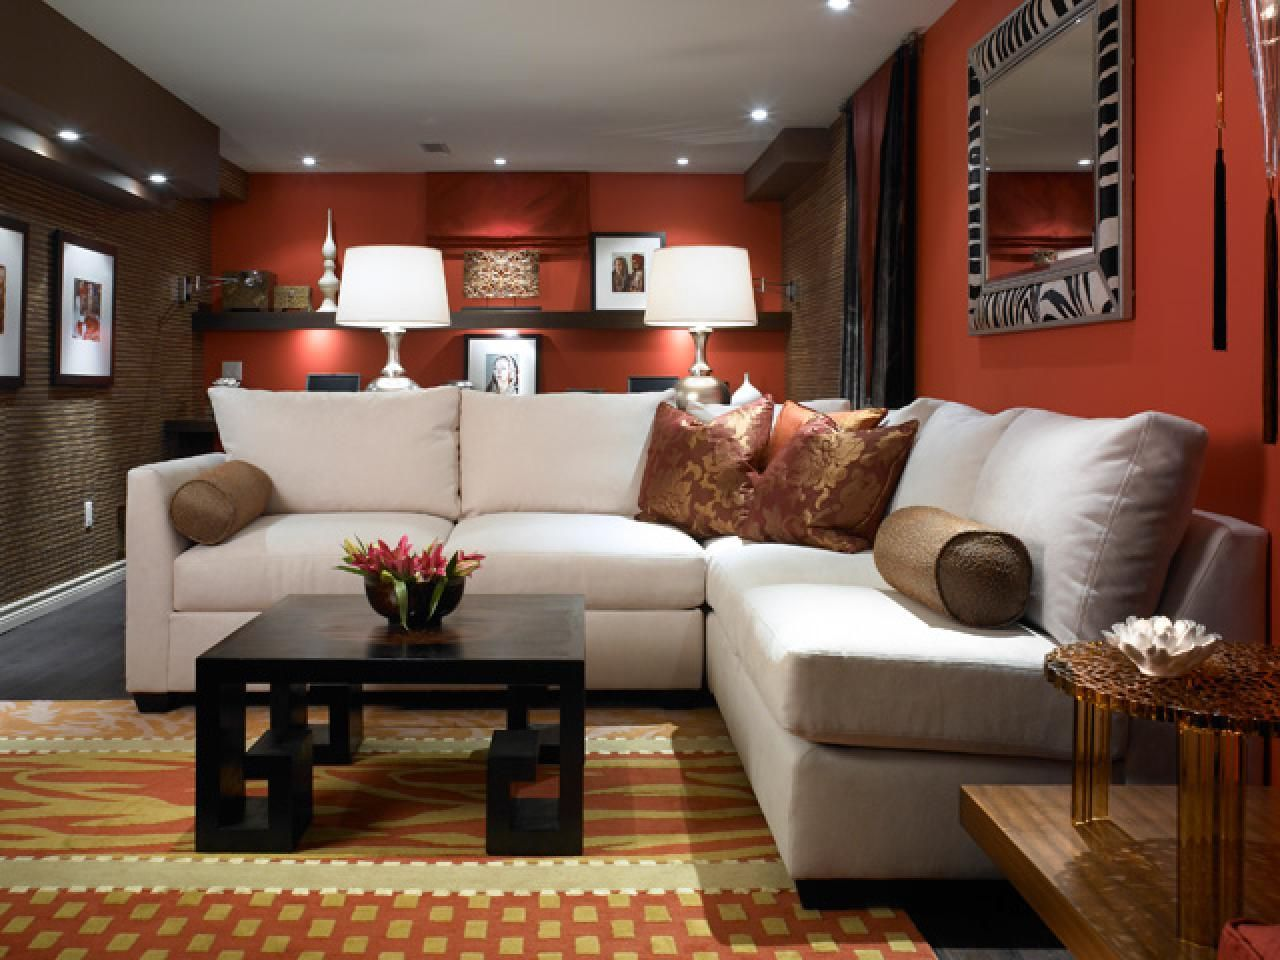 Basement Living Room Designs Impressive Basement Makeover Ideas From Candice Olson  Basement Makeover Design Decoration